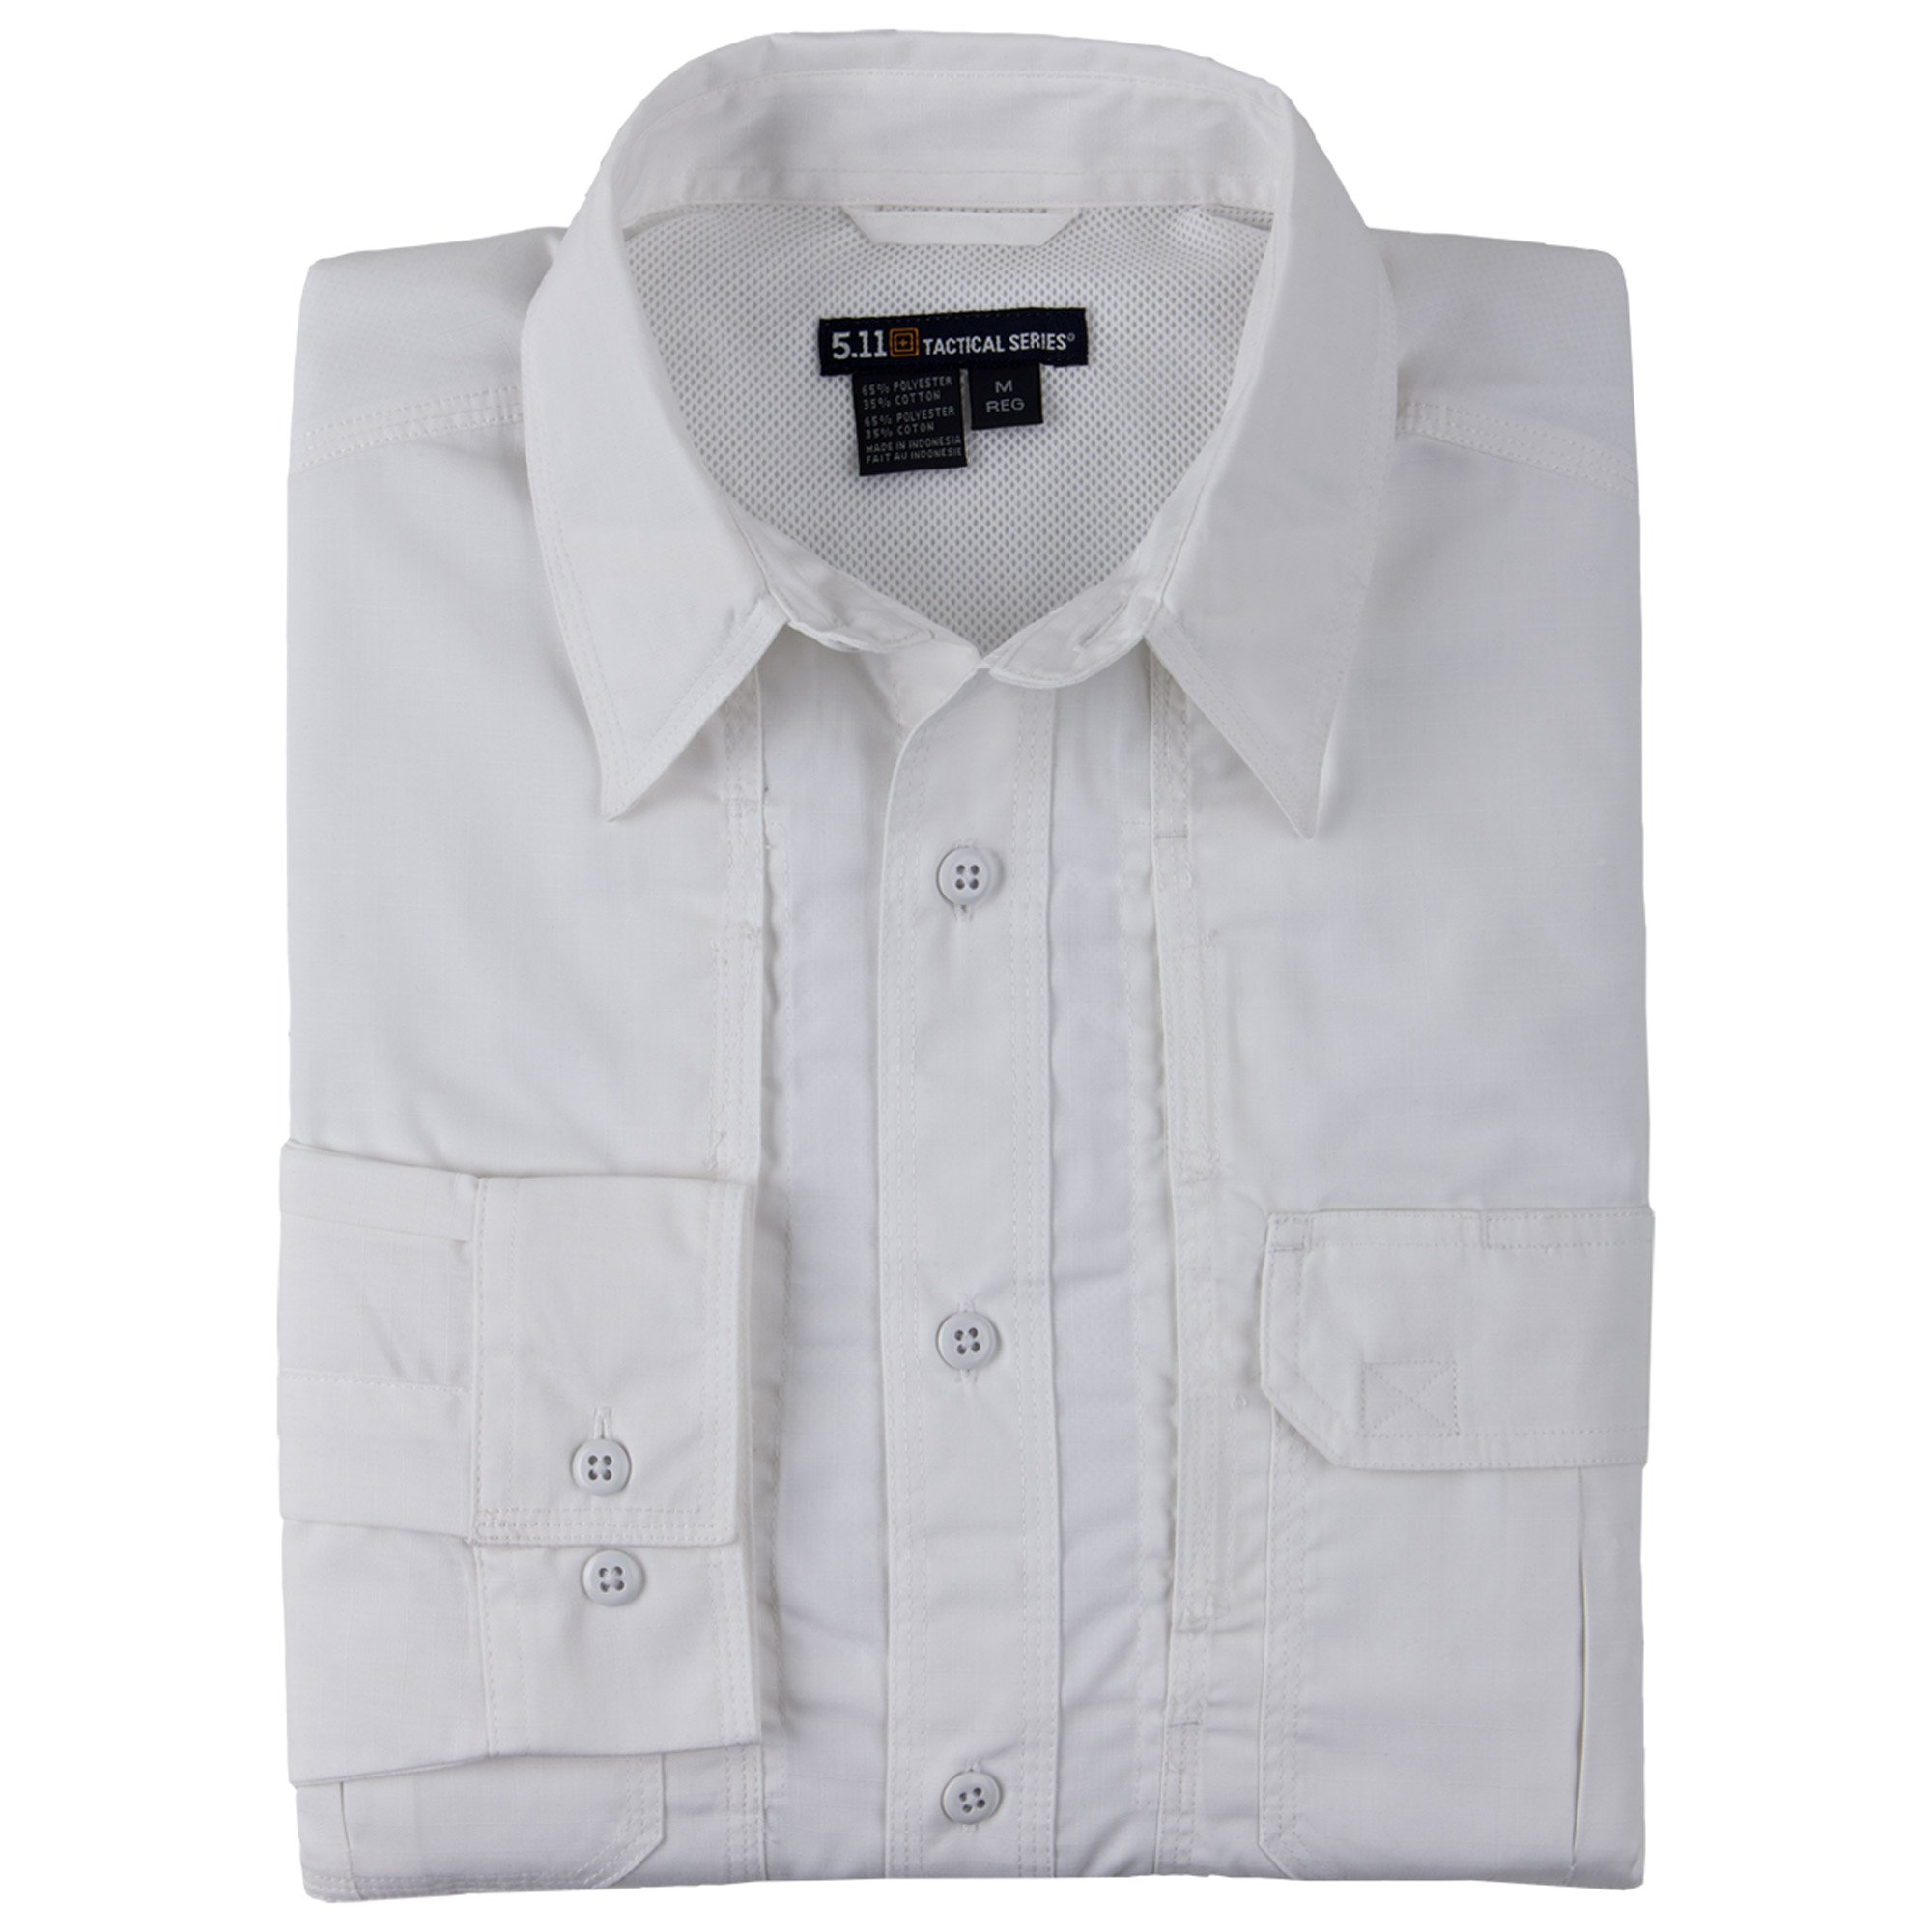 5.11 Tactical TacLite Professional Long Sleeve Shirt, White, Small